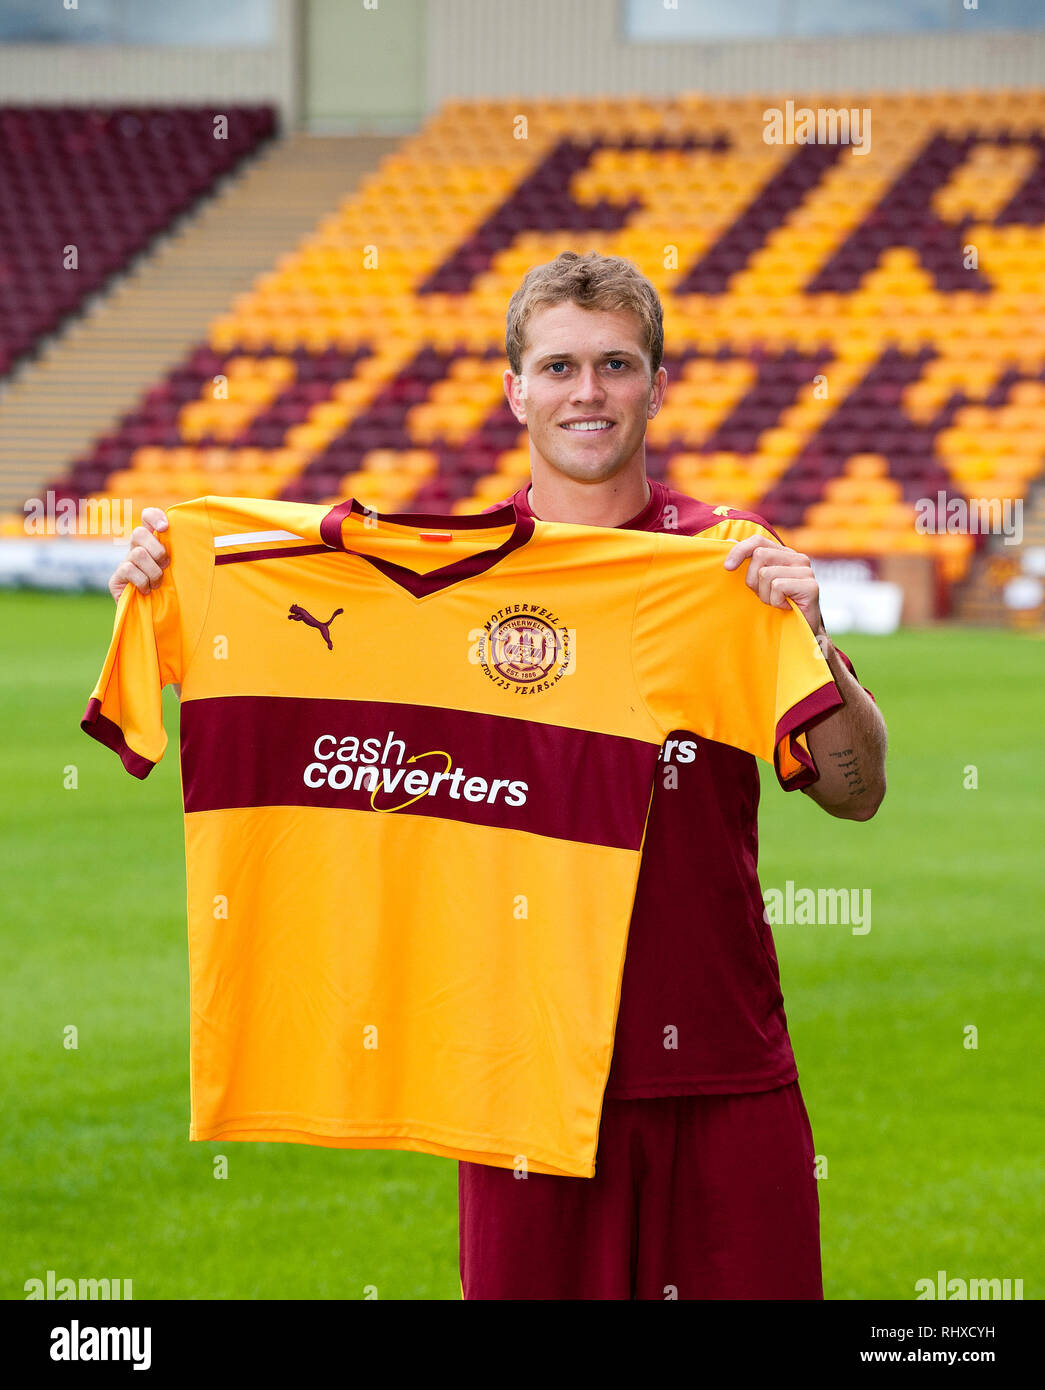 New Motherwell FC signing, Nicky Law is unveiled at Fir Park.  Lenny Warren / Warren Media  07860 830050 01355 229700 lenny@warrenmedia.co.uk www.warr Stock Photo